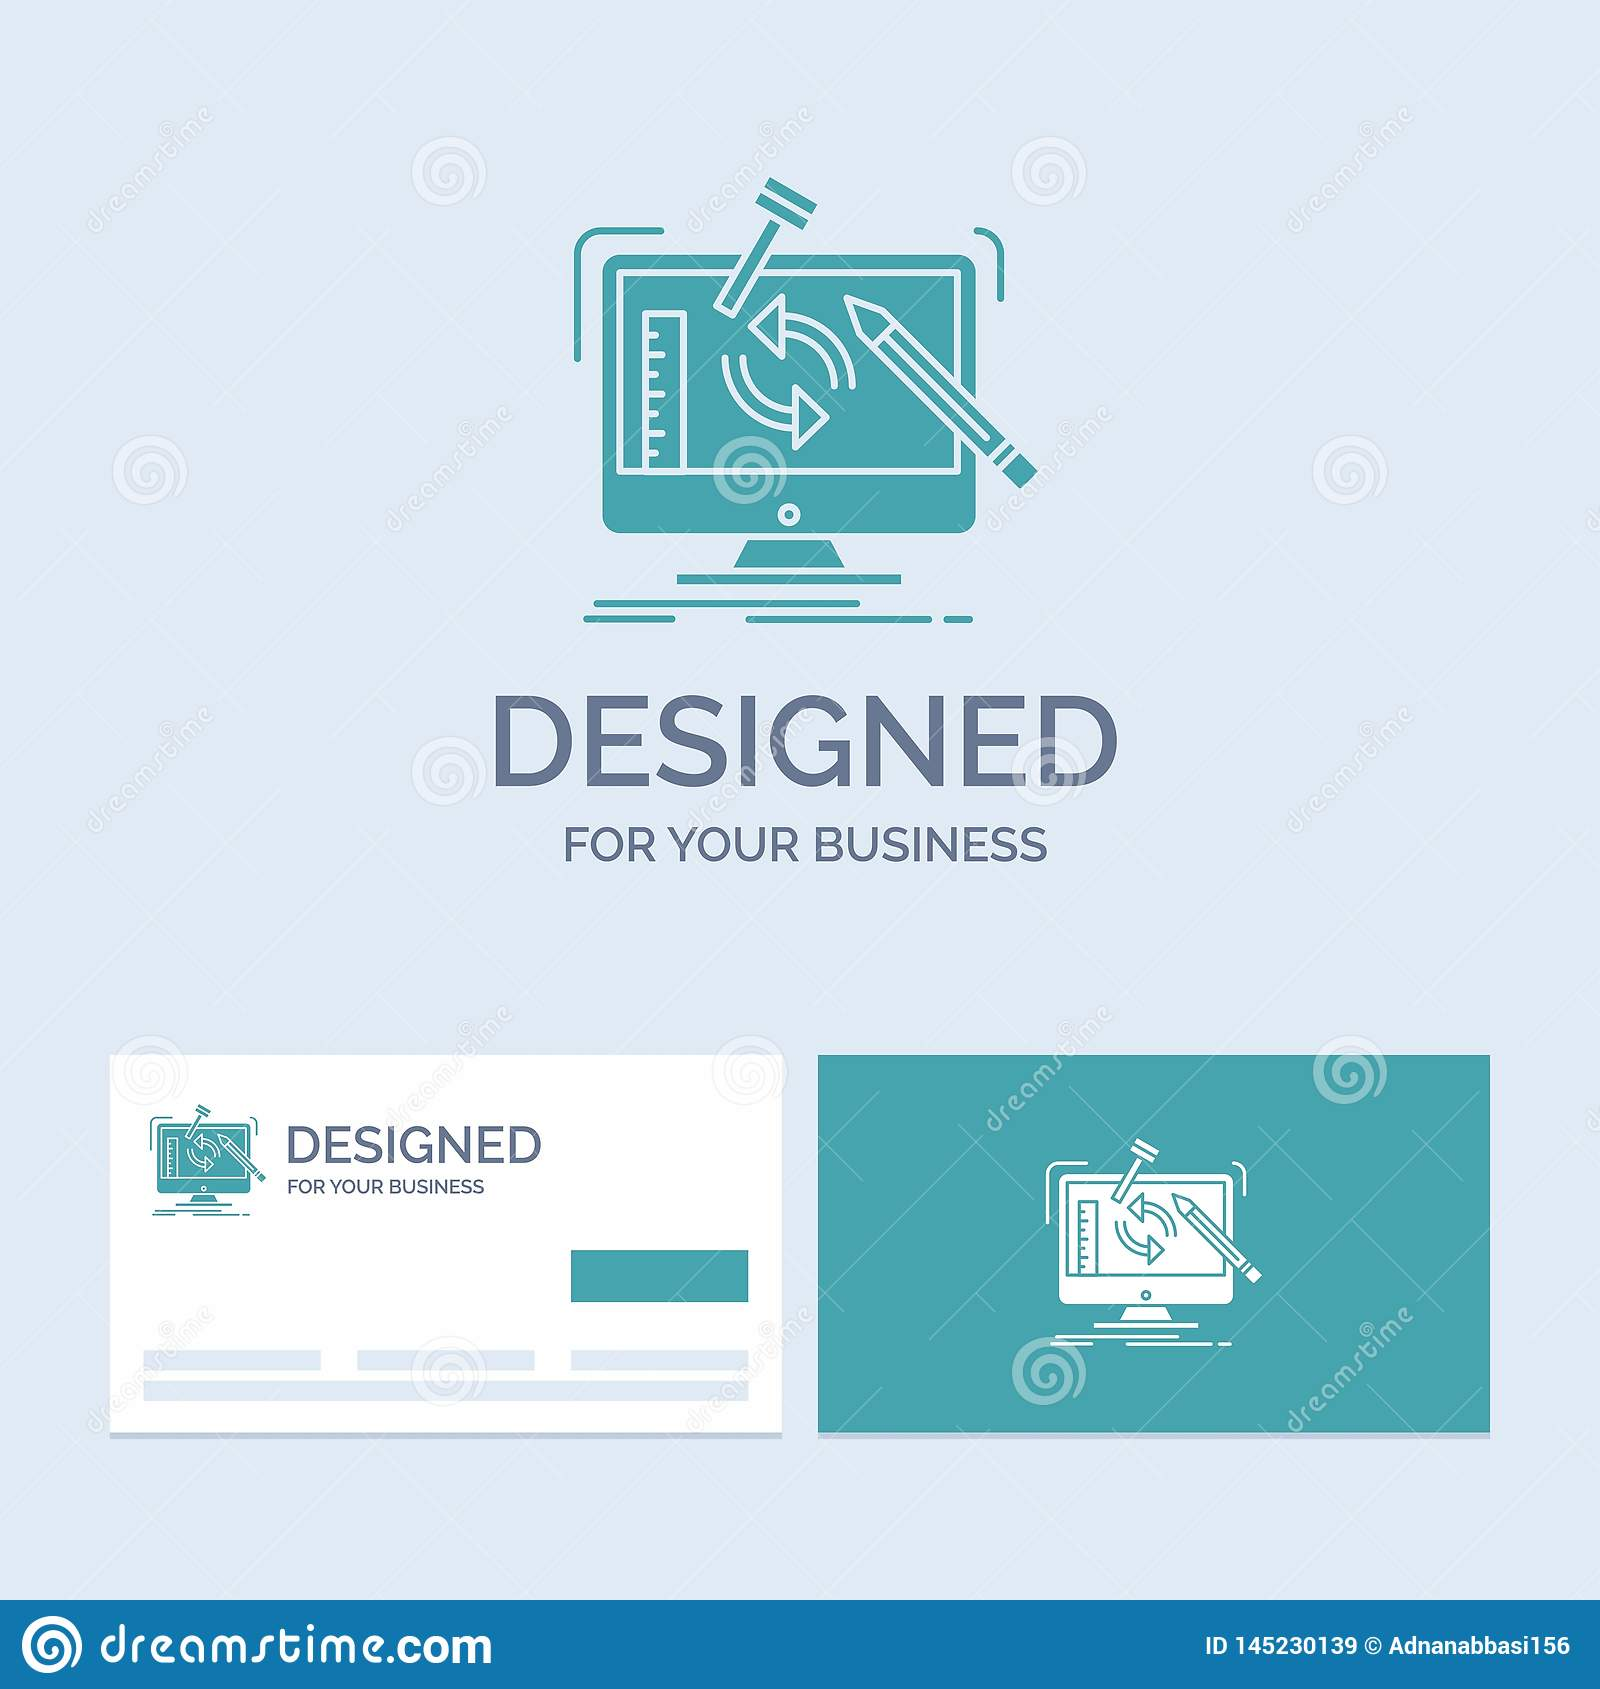 engineering, project, tools, workshop, processing Business Logo Glyph Icon Symbol for your business. Turquoise Business Cards with